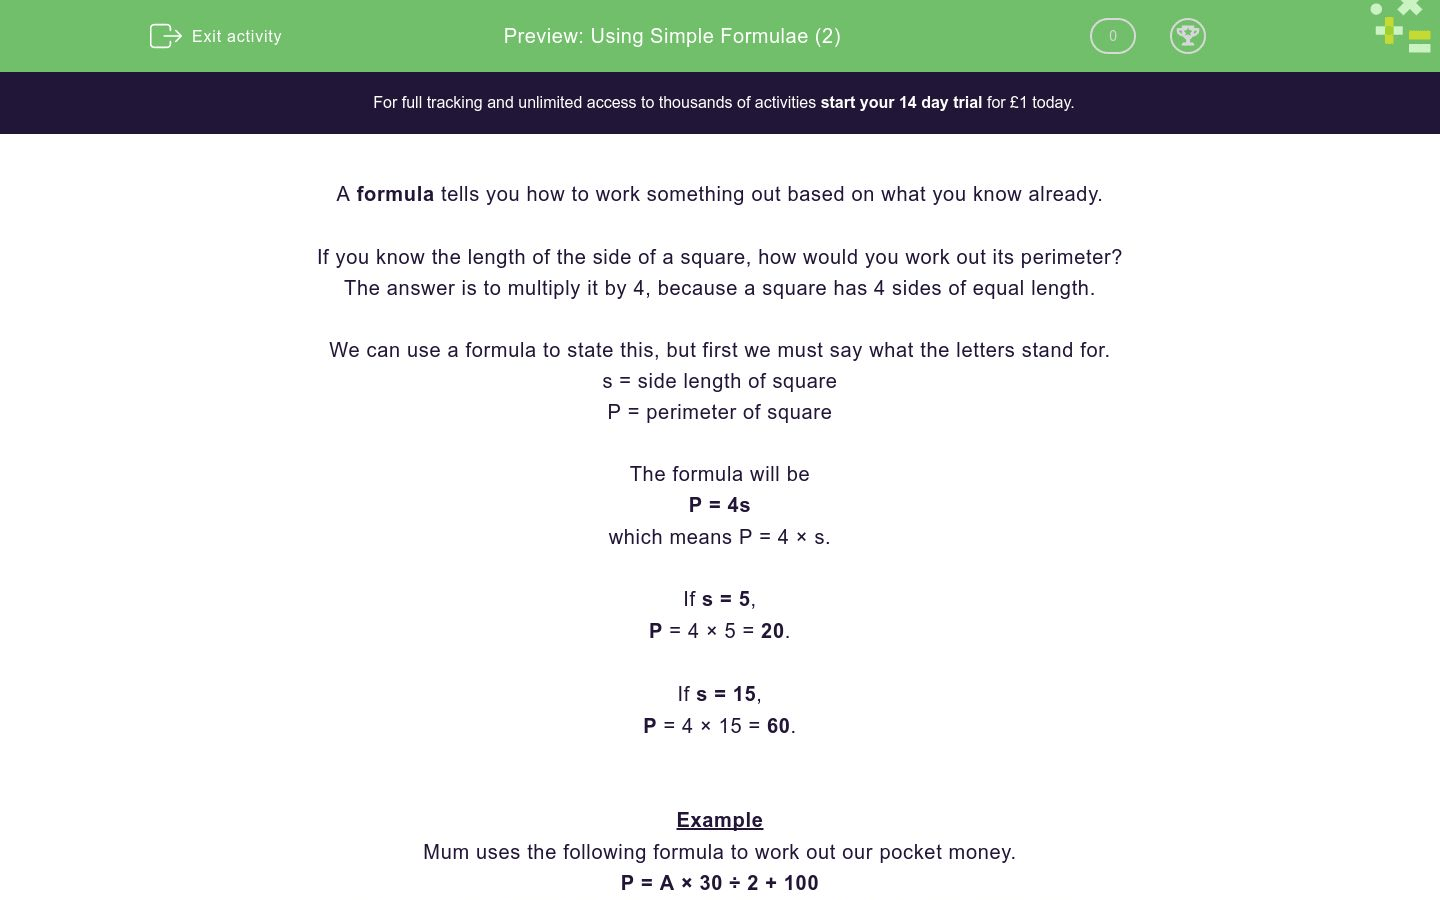 Using Simple Formulae 2 Worksheet